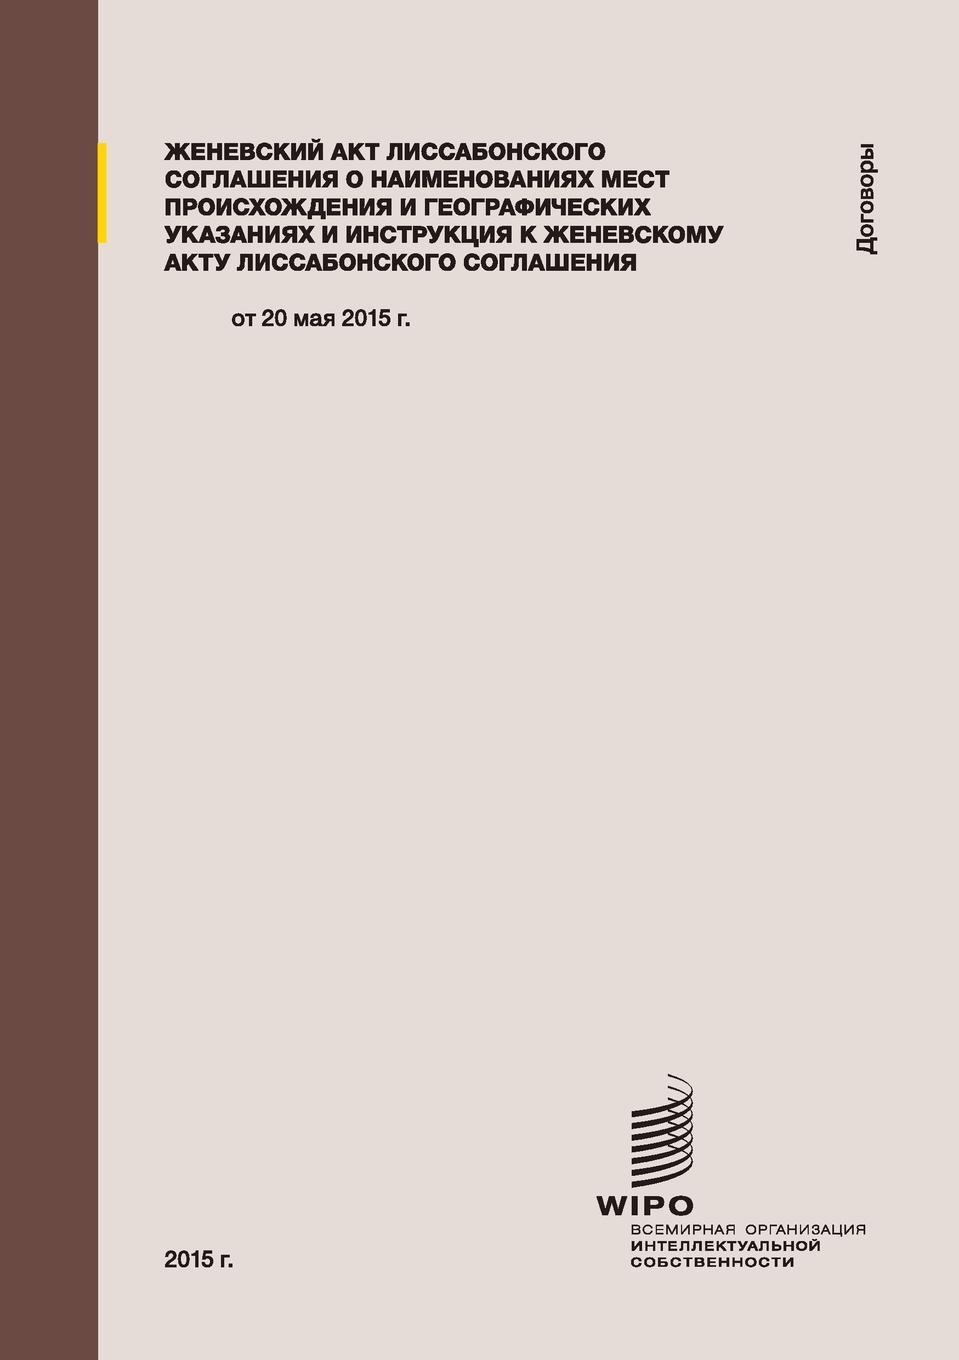 Geneva Act of the Lisbon Agreement on Appellations of Origin and Geographical Indications. (Russian edition)